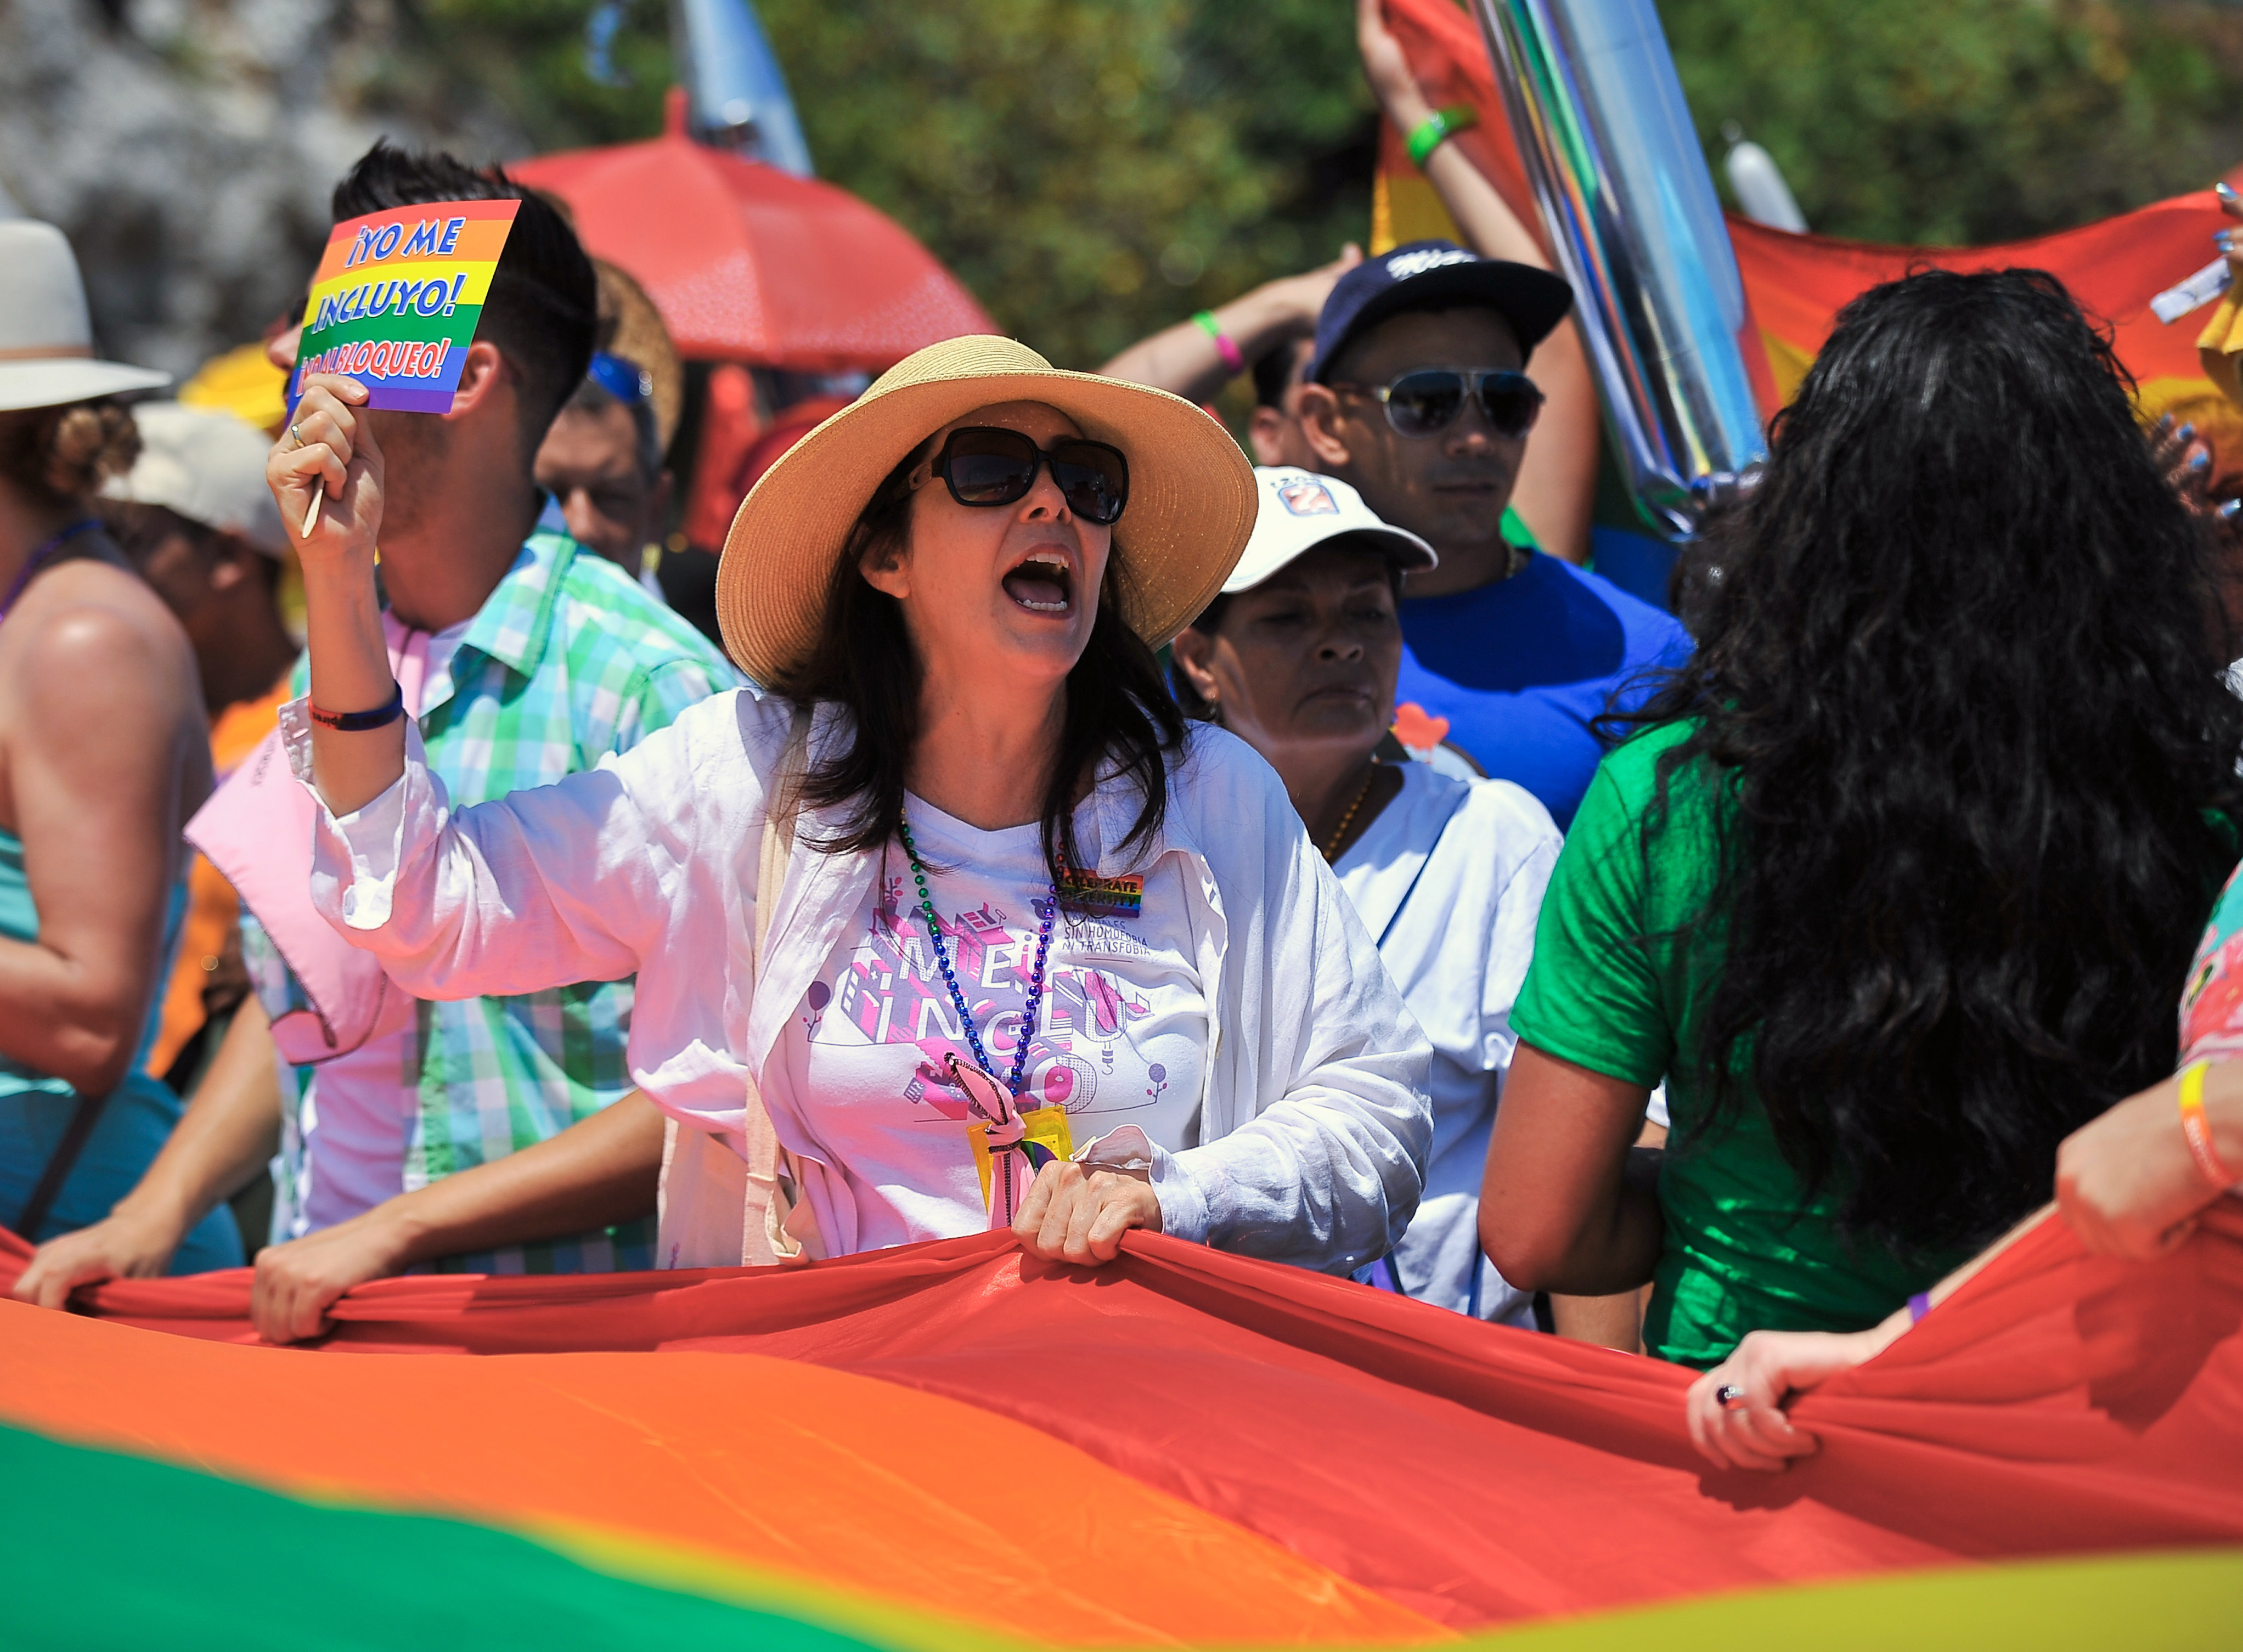 Cuban director of the Cuban National Center for Sex Education (CENESEX) Mariela Castro, daughter of President Raul Castro, participates in a march against homophobia on May 14, 2016 in Havana. / AFP PHOTO / YAMIL LAGE